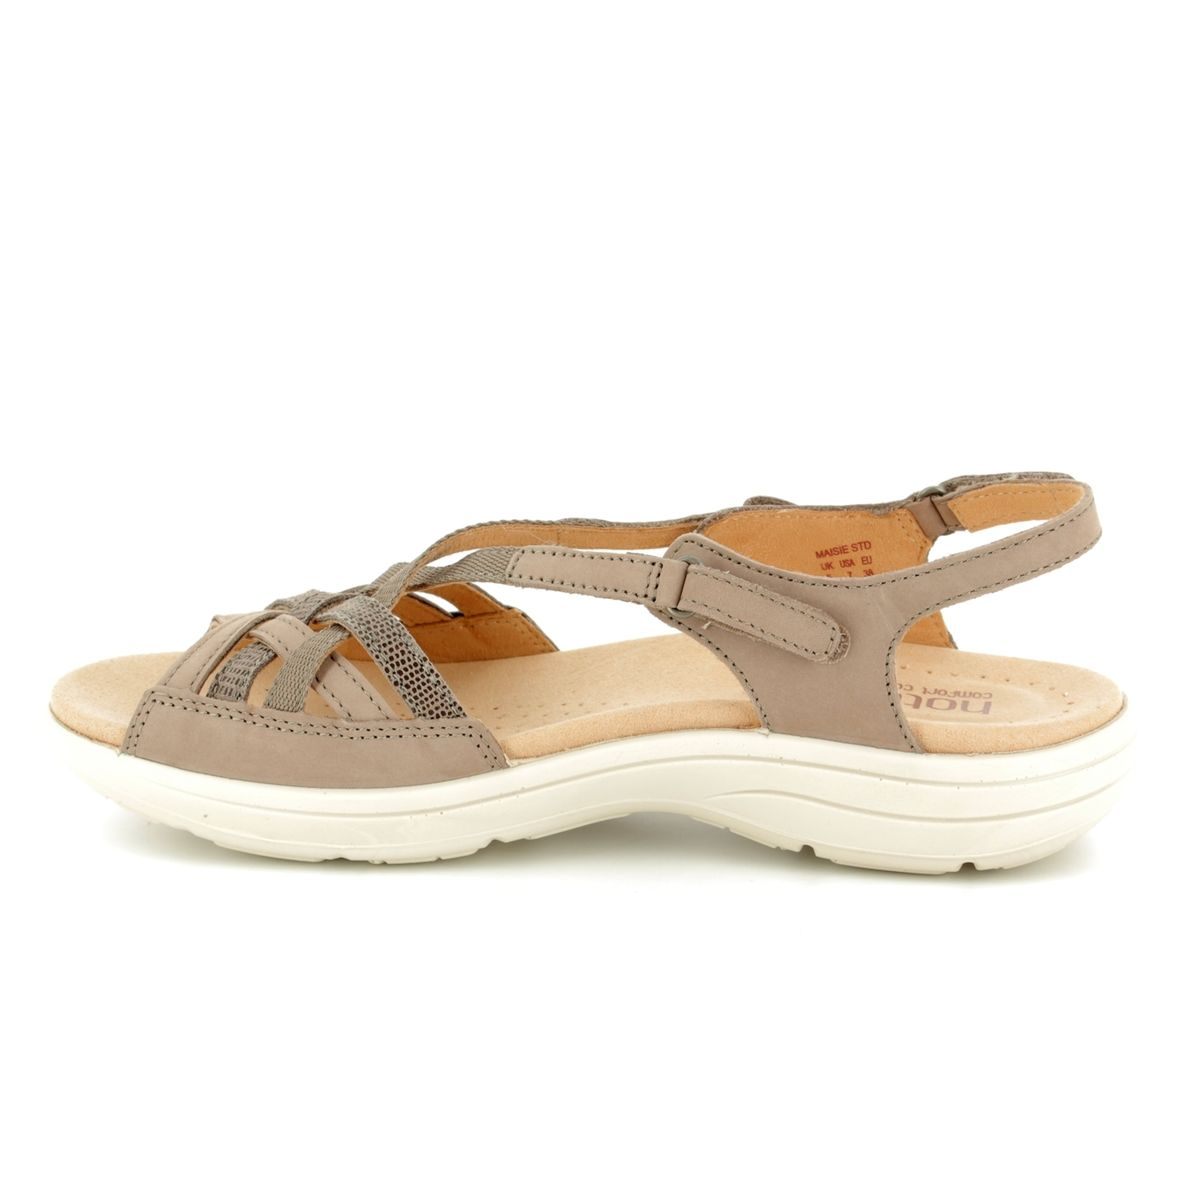 Hotter Sandals Taupe Nubuck 8109 53 Maisie E Fit